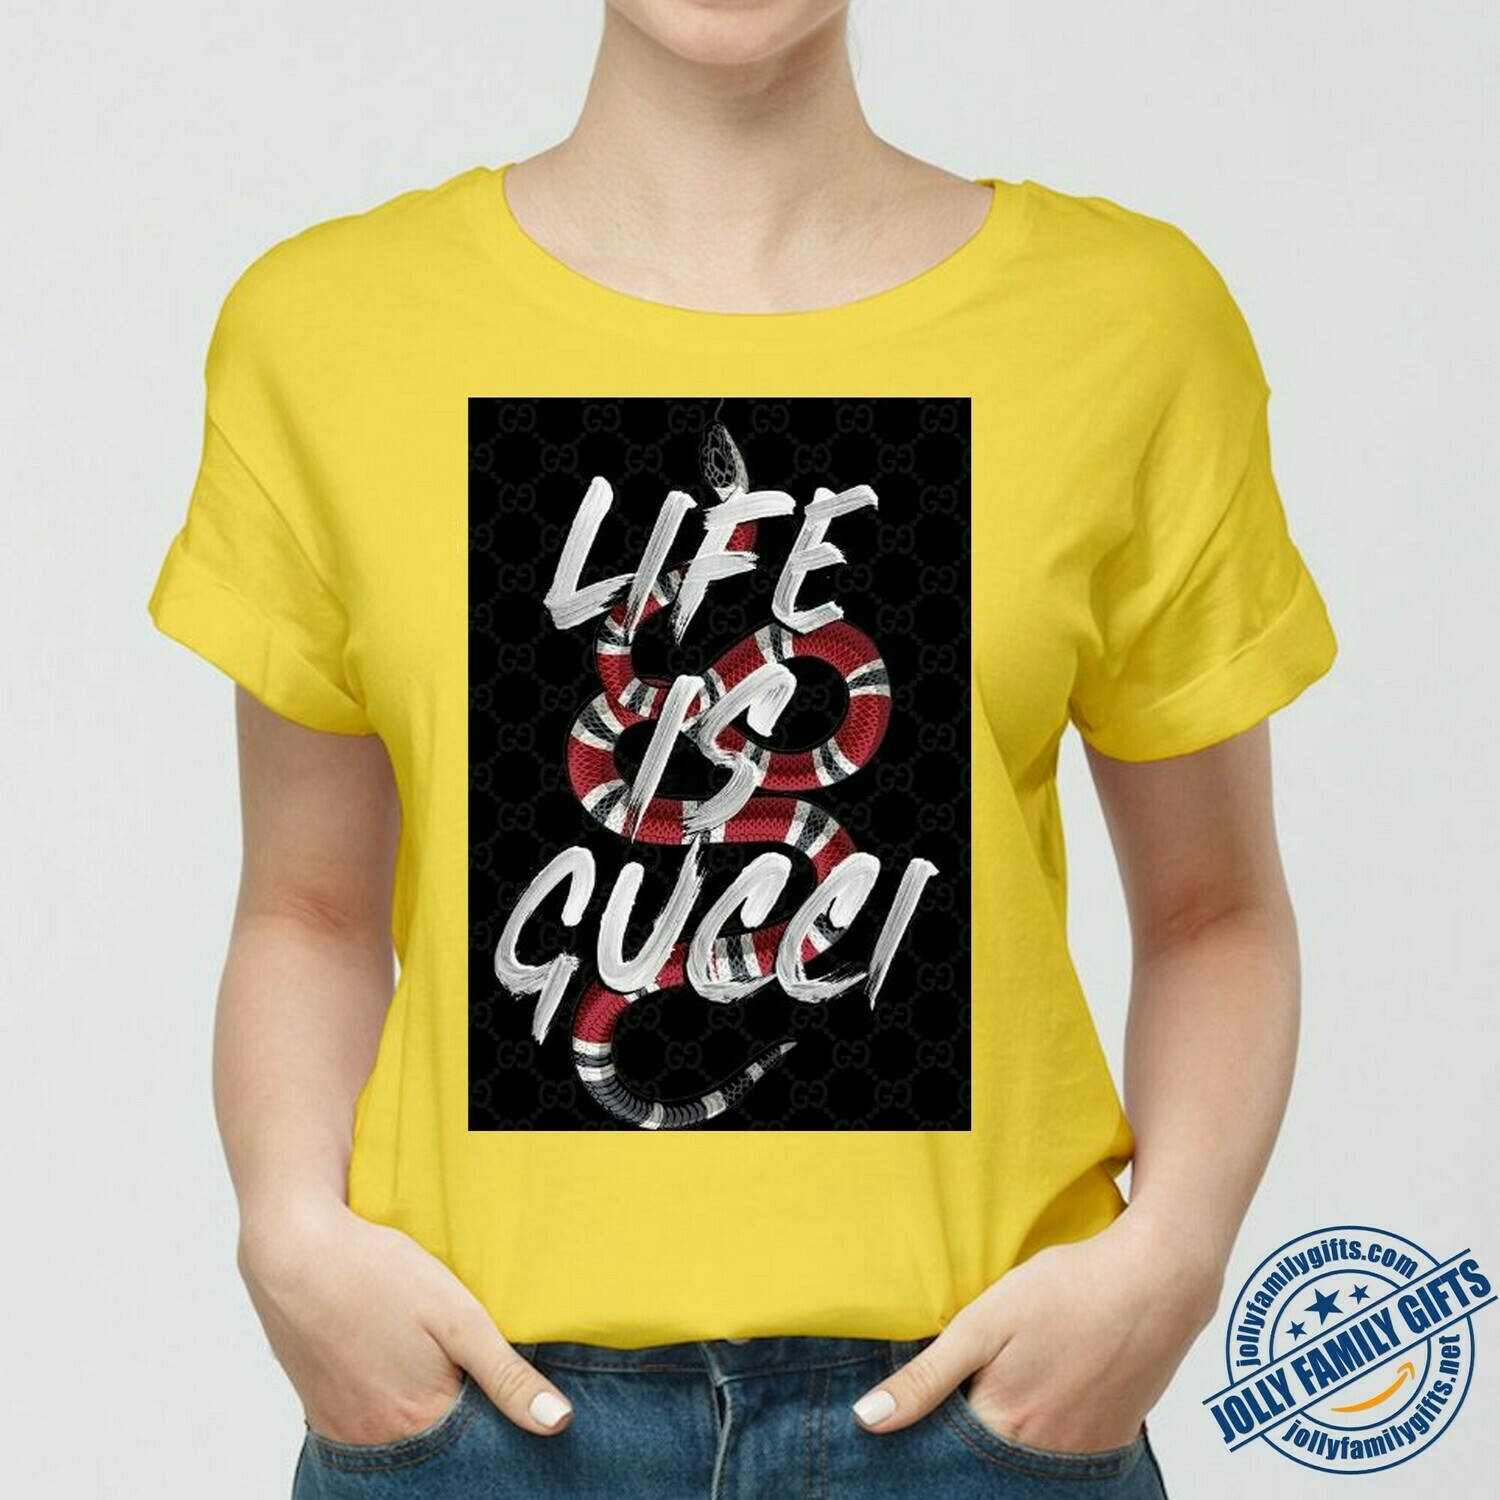 Life Is Gucci Classic Logo Red Snake Supreme LV T-shirt Louis Vuitton Fashion LV Fashion for Women Men Vintage  Unisex T-Shirt Hoodie Sweatshirt Sweater for Ladies Women Men Kids Youth Gifts Tee Jolly